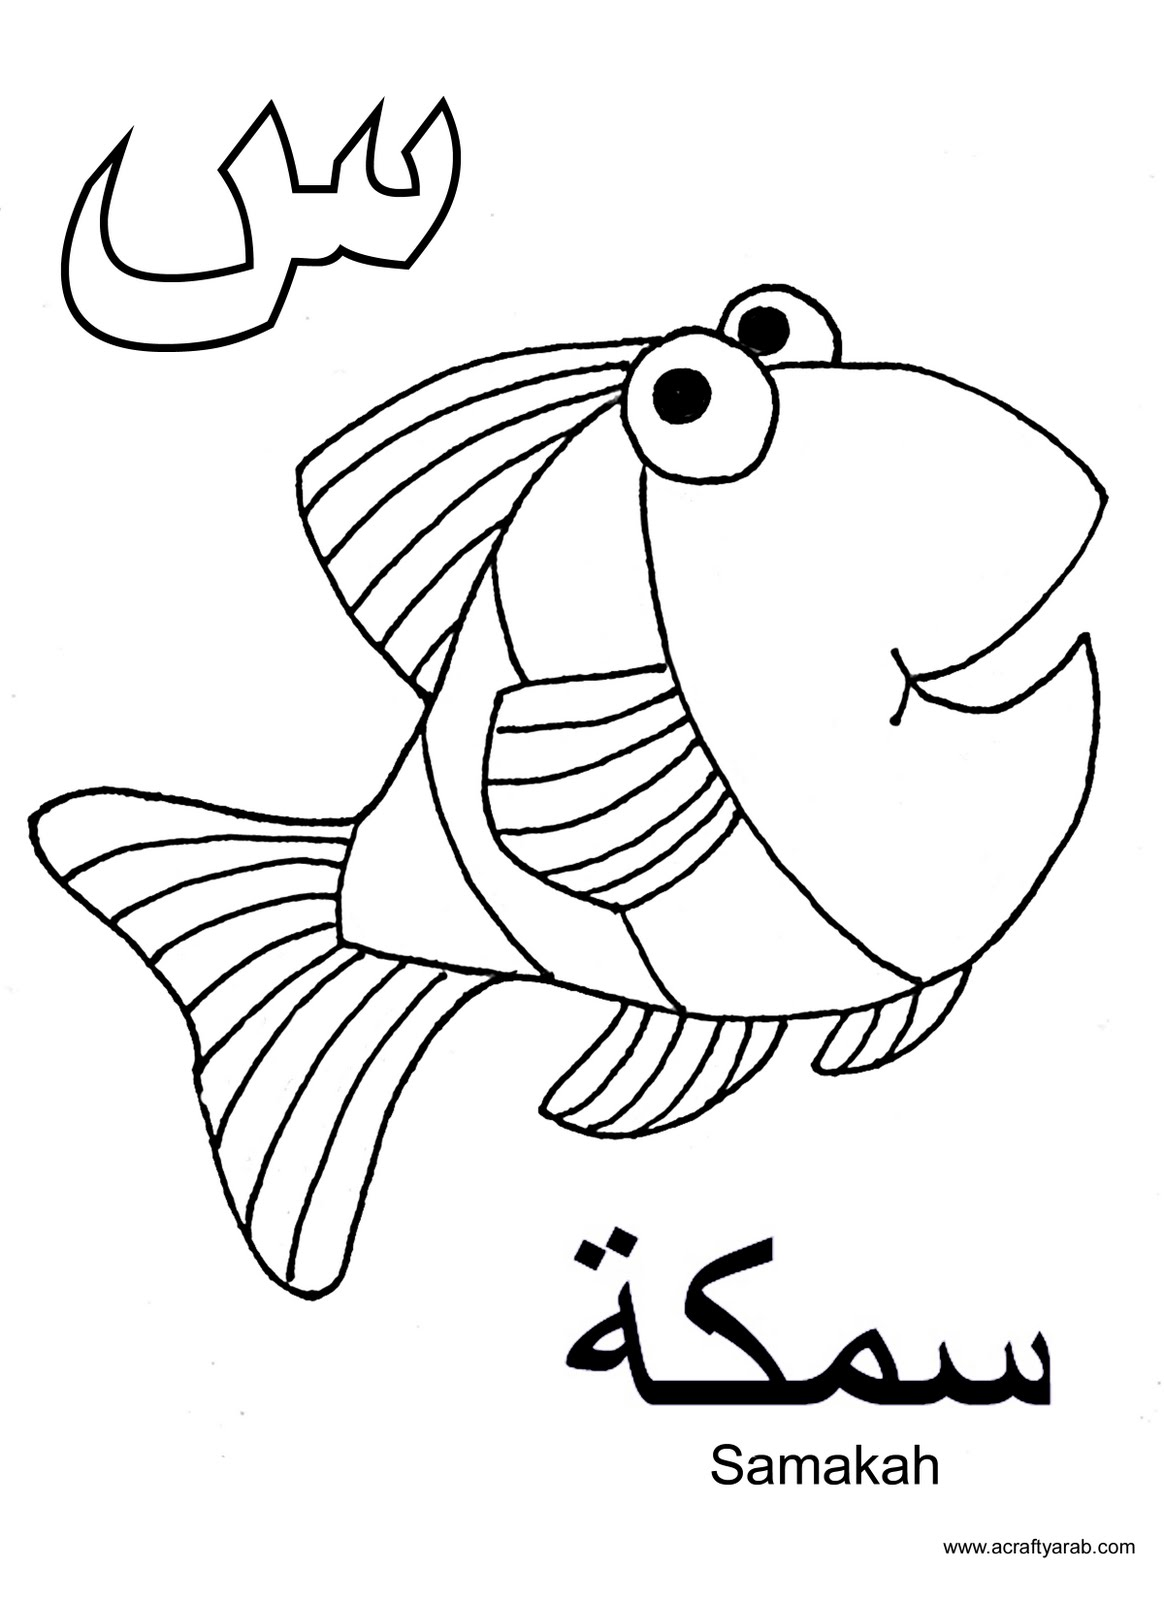 Coloring Pages Arabic Alphabet : A crafty arab arabic alphabet colouring pages sa is for